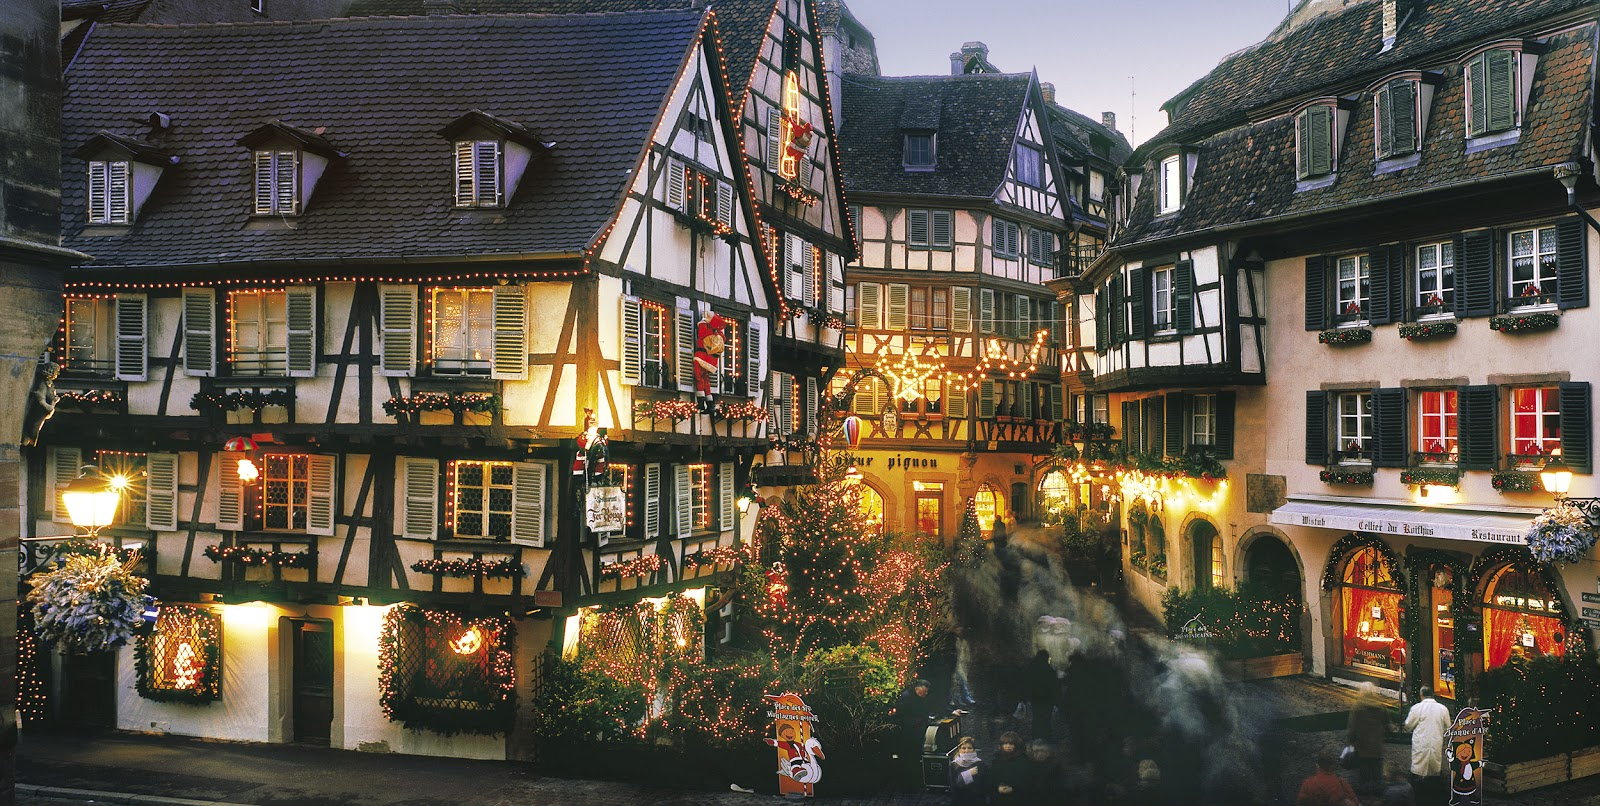 Colmar France  city pictures gallery : enchantment abounds along Rue des Marchands in Colmar, France ...